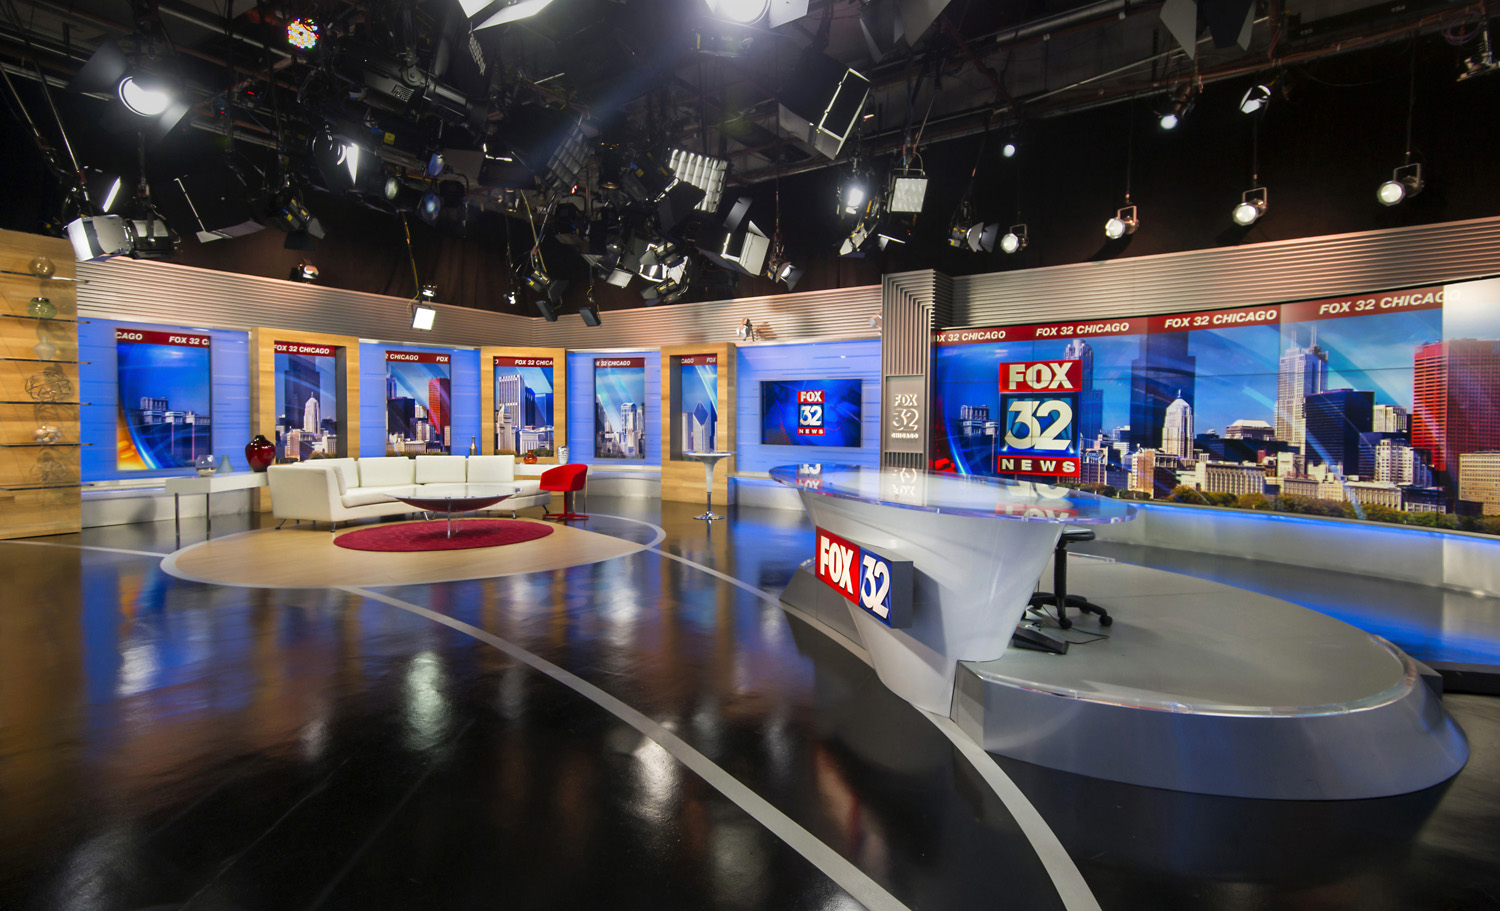 ncs_fox-chicago-wfld-tv-studio_0001